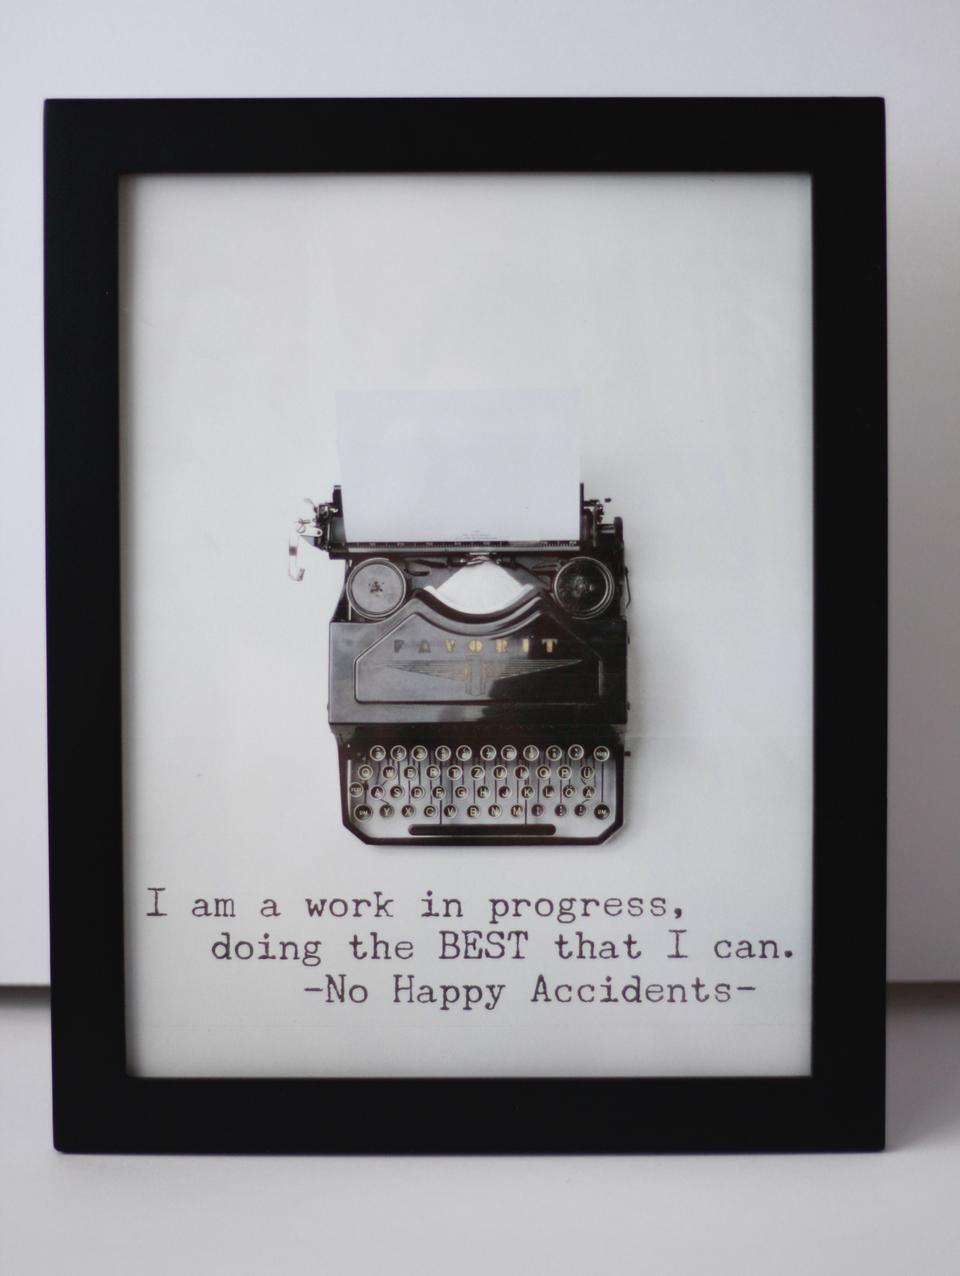 Inspirational Artwork For Your Home Or Office By Kim Kusiciel Of No Happy  Accidents